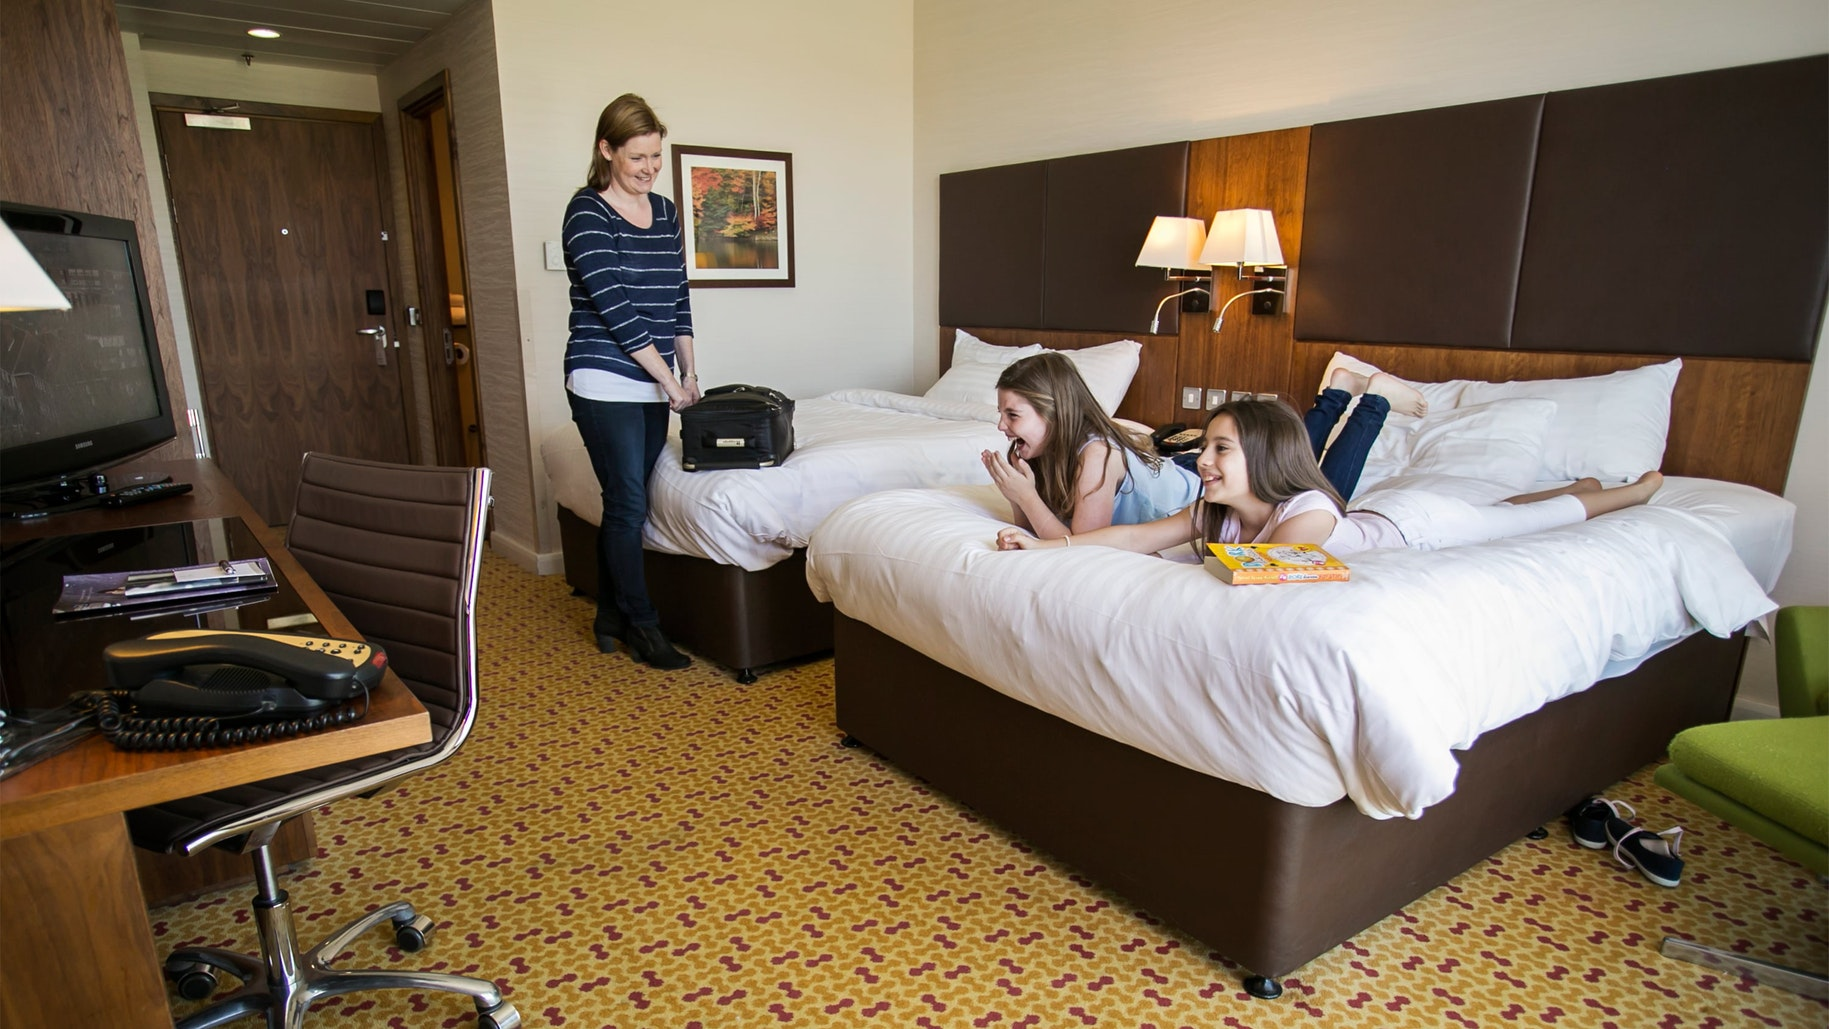 LINGFIELD PARK MARRIOTT HOTEL & COUNTRY CLUB near Chessington World of Adventures Resort